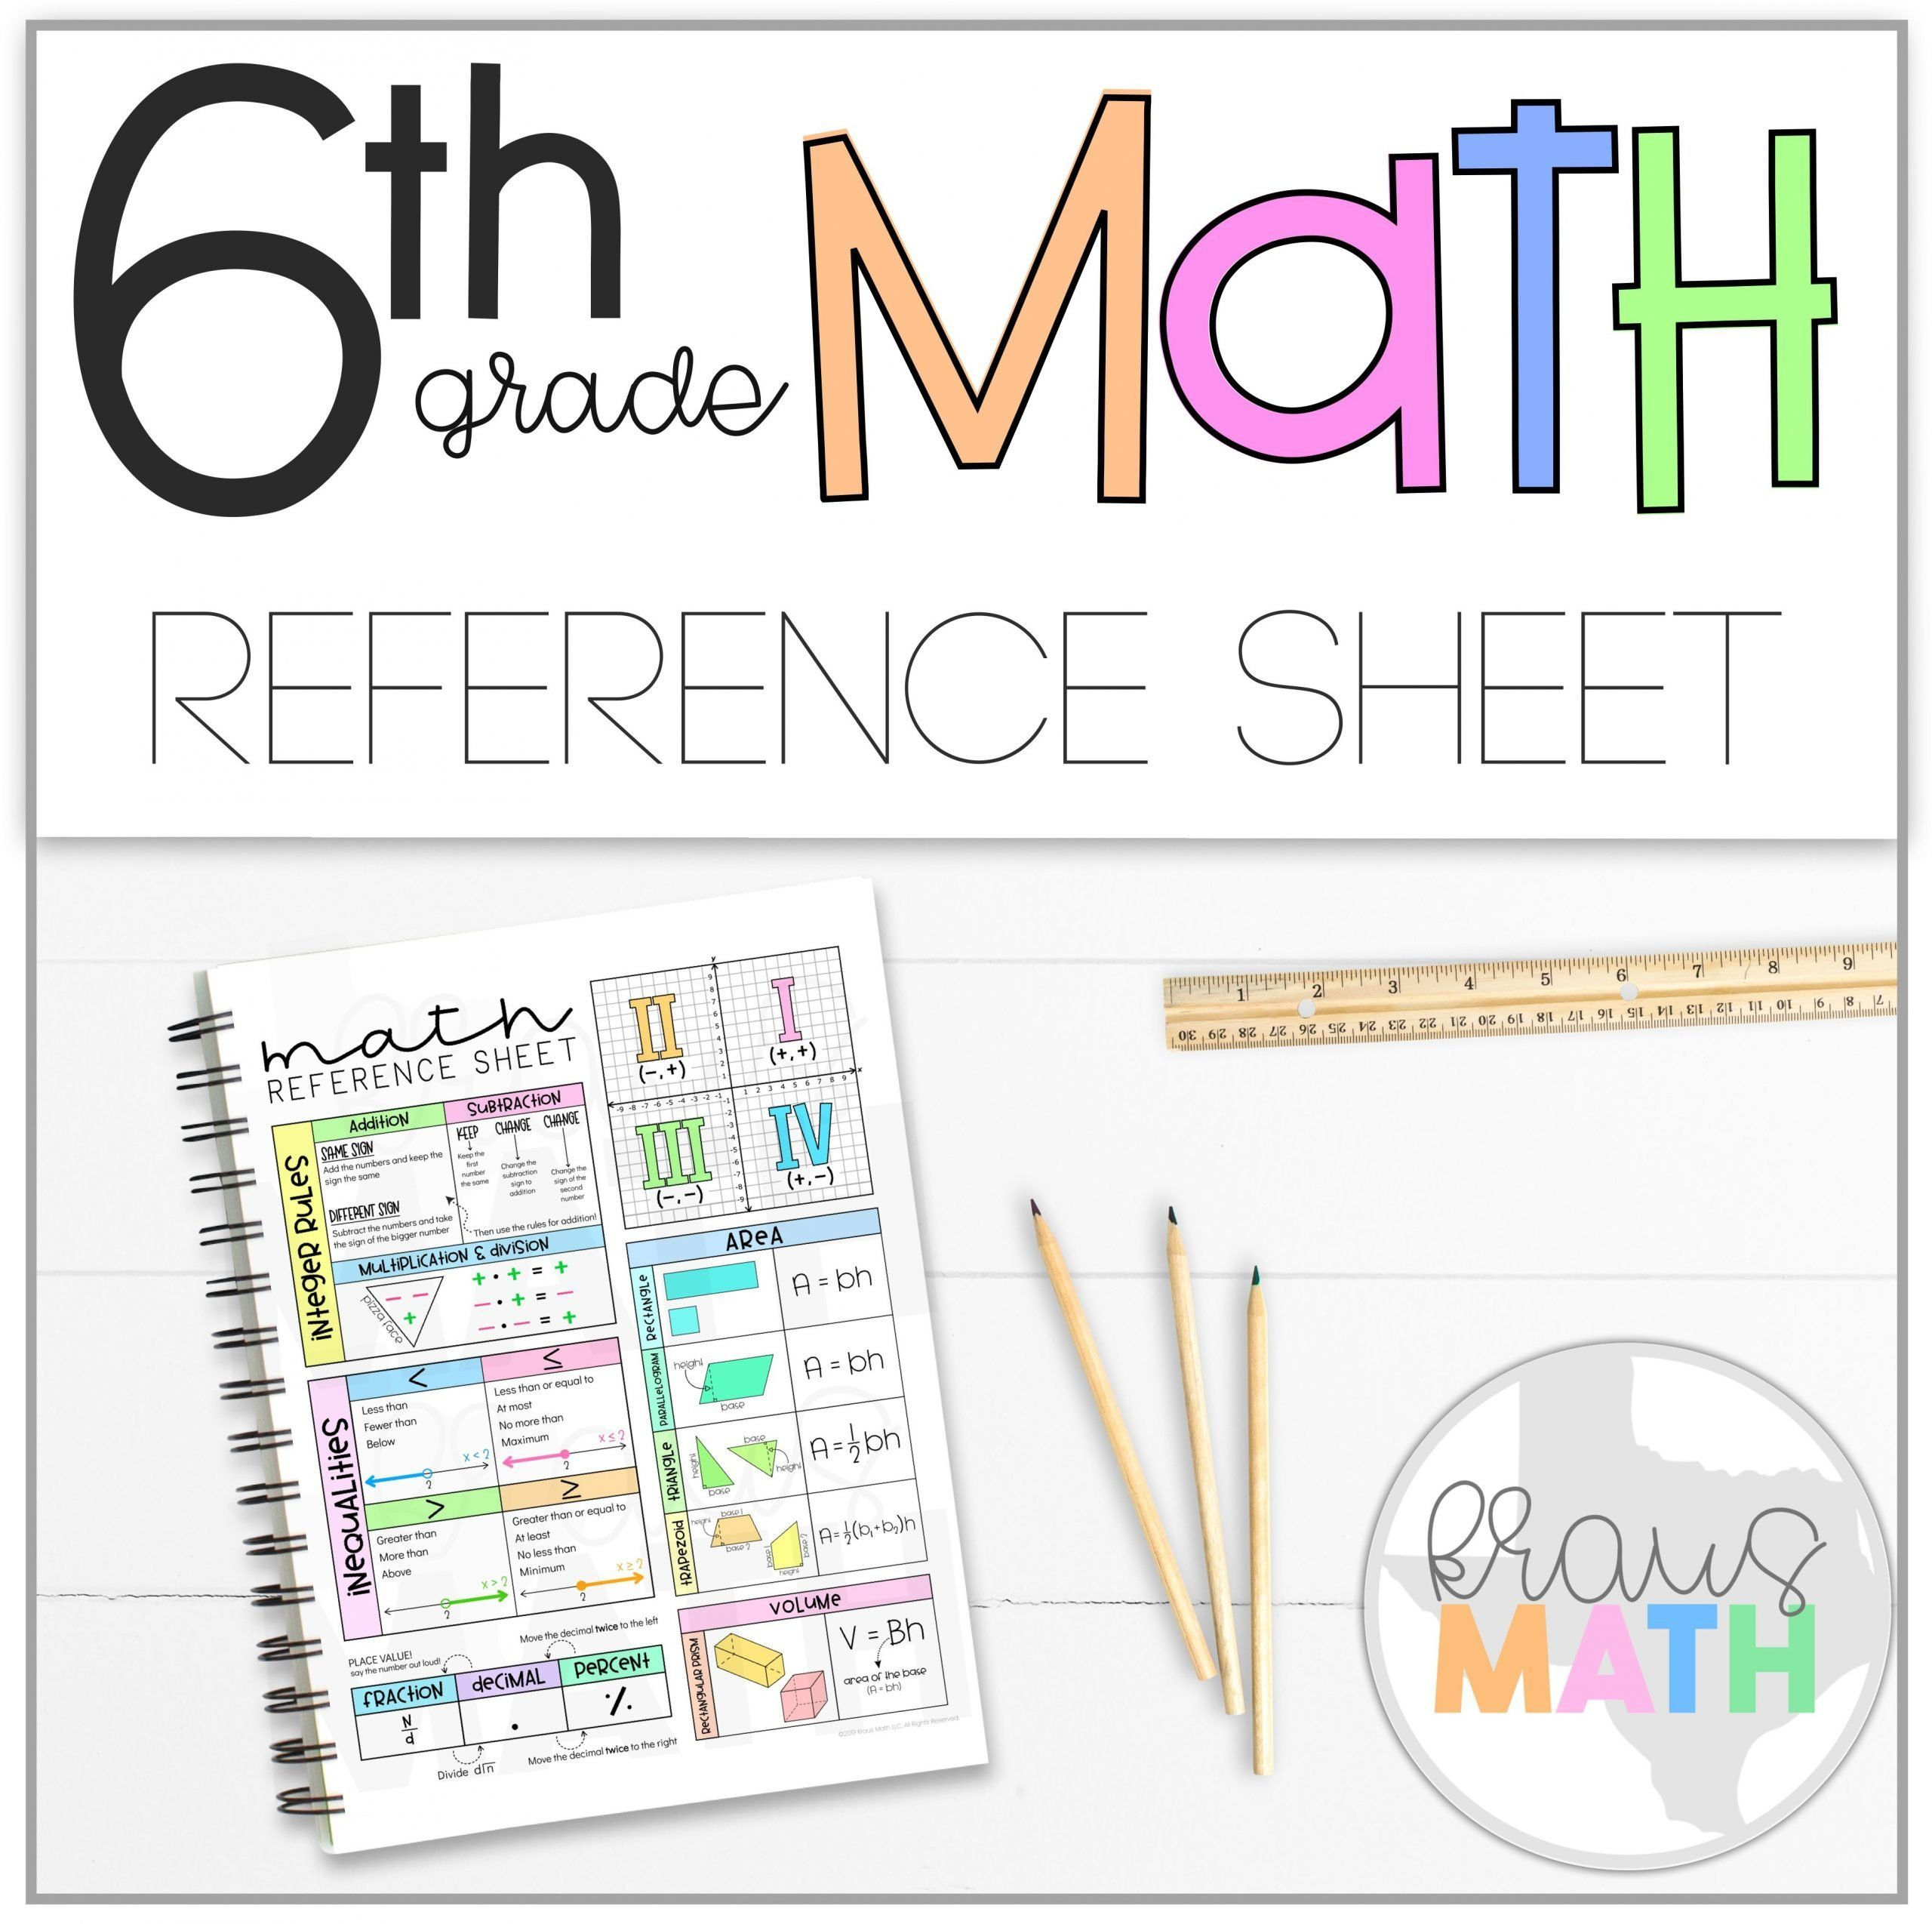 hight resolution of 6th Grade Math Teks Worksheets Multiply \u0026 Divide Integers Notes \u0026 Worksheet  6 3d   Math reference sheet